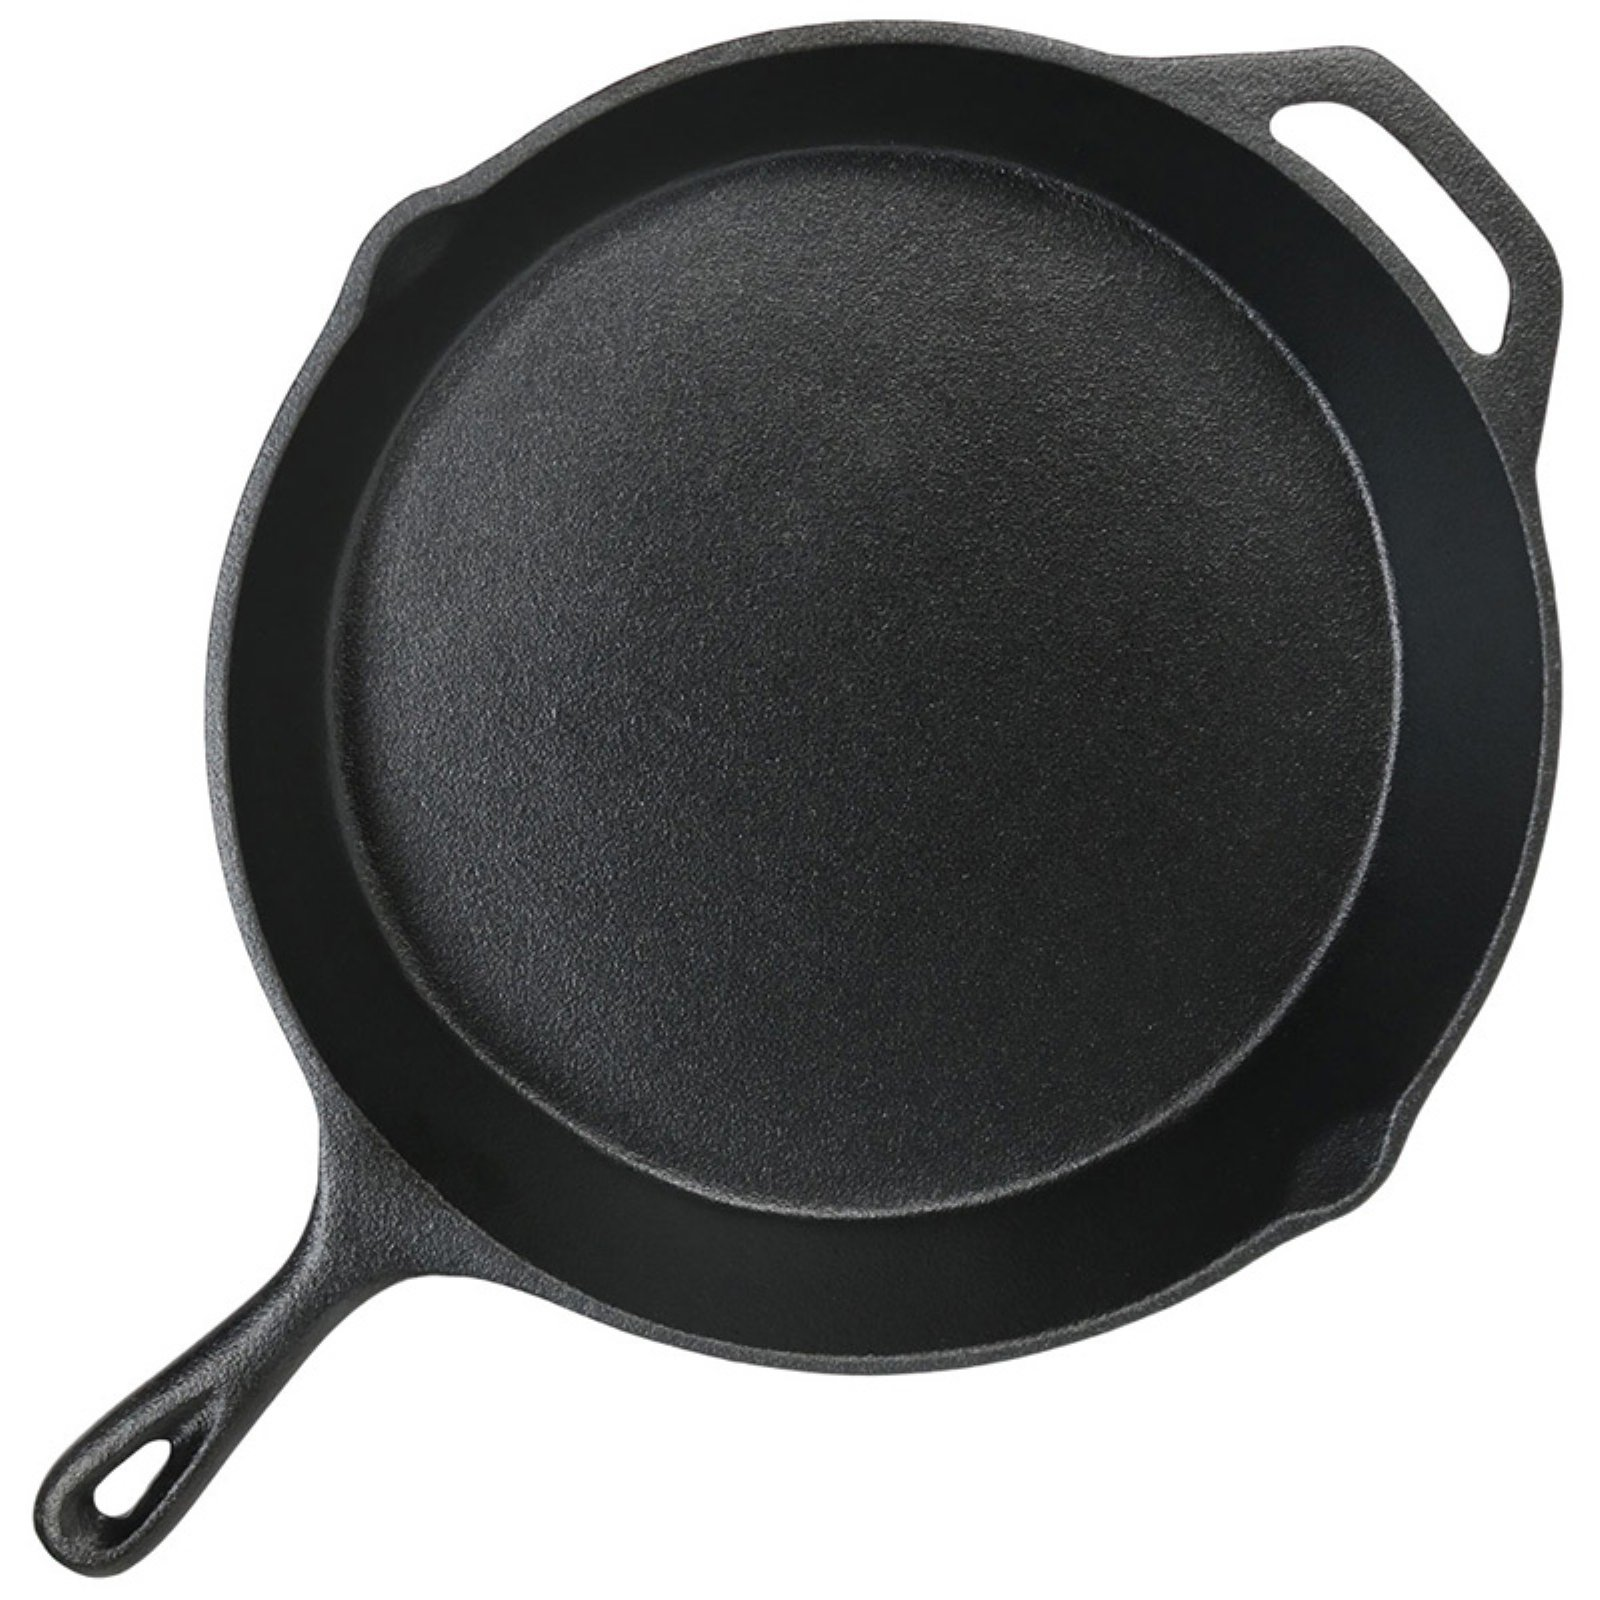 Sunnydaze Decor 12-in. Pre-Seasoned Cast Iron Skillet Fry Pan